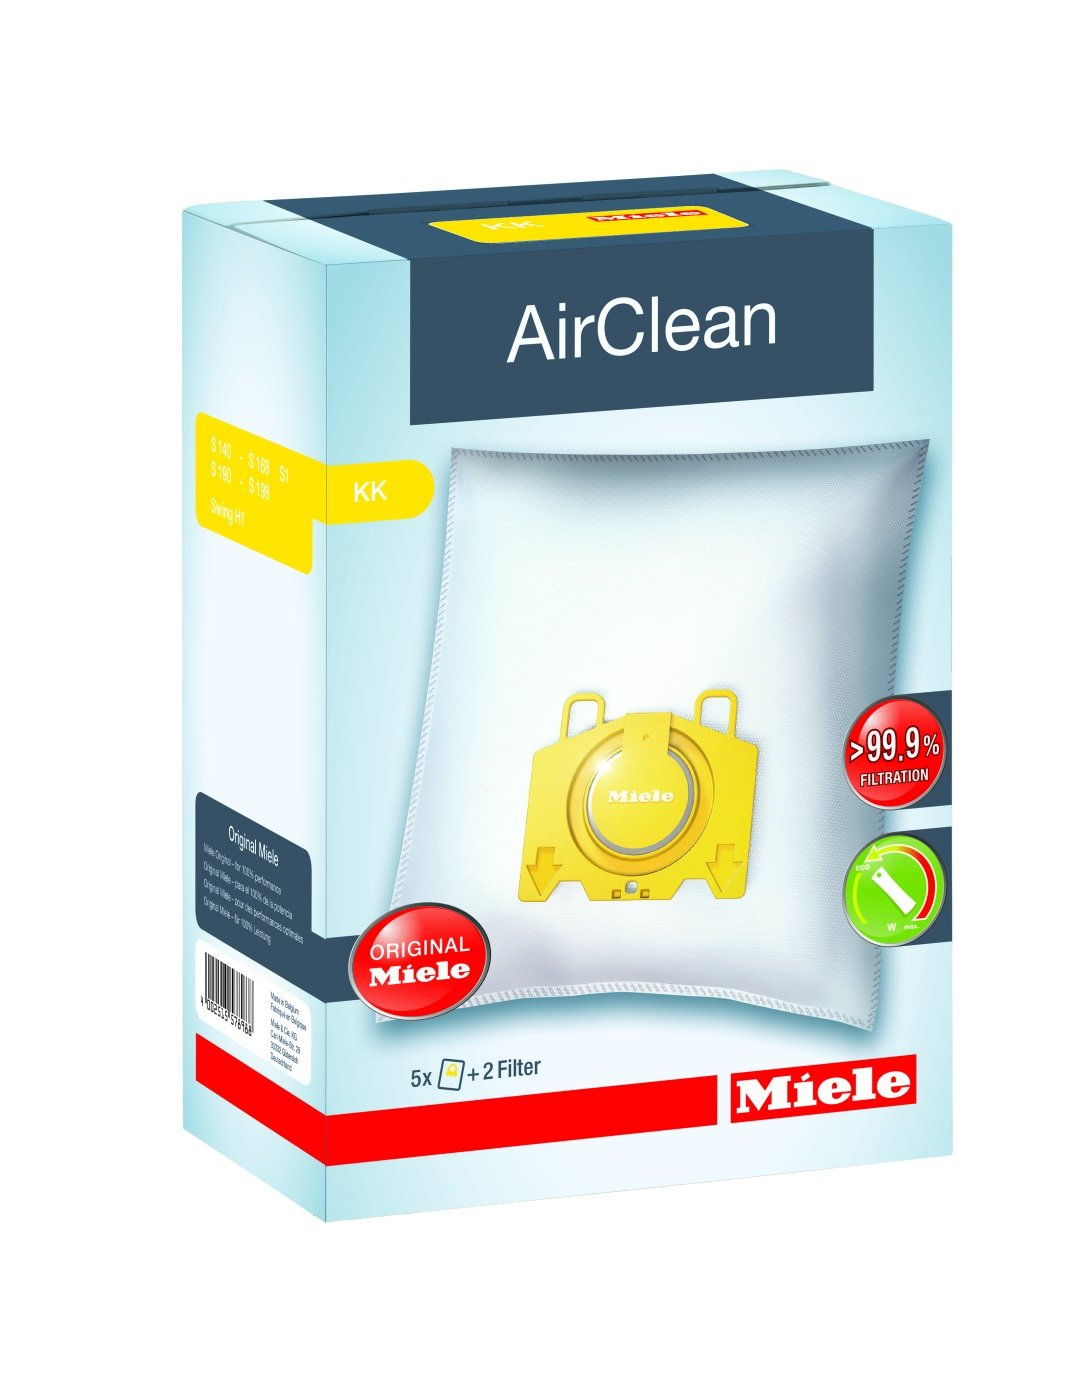 Miele AirClean FilterBags Type KK by Miele